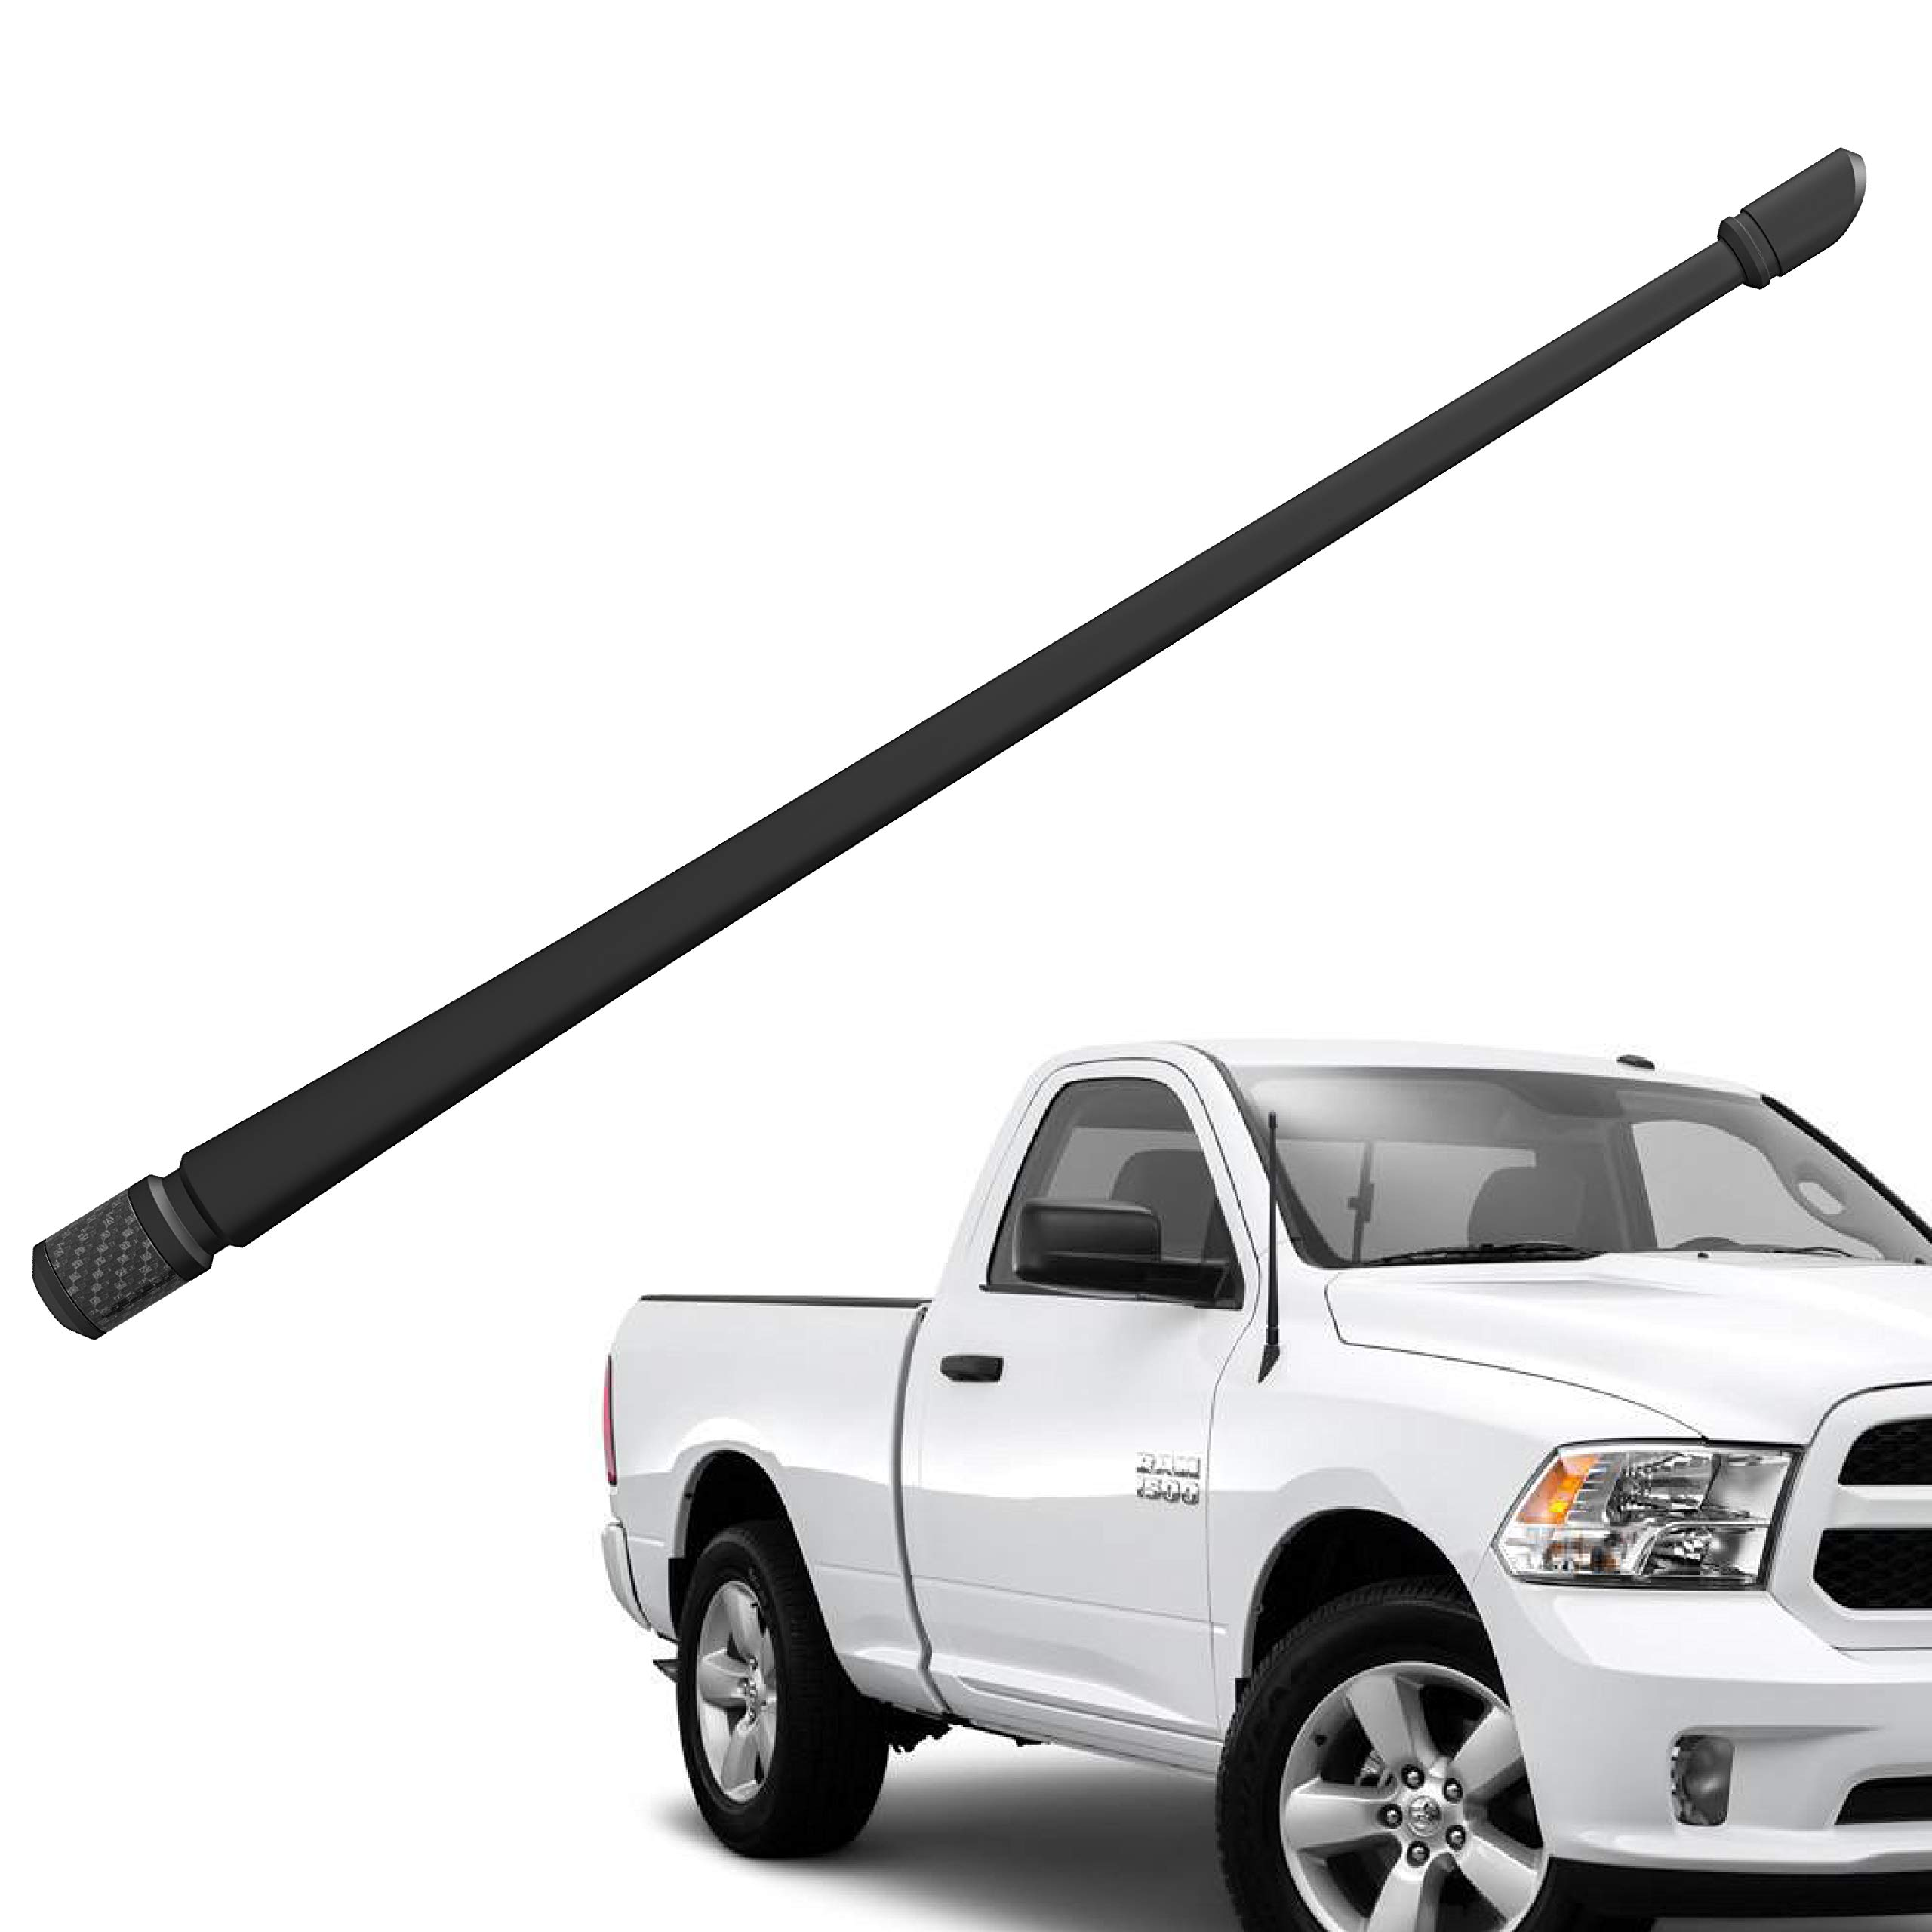 Rydonair Antenna Compatible with 2012-2019 Dodge Ram 1500 | 13 inches Flexible Rubber Antenna Replacement | Designed for Optimized FM/AM Reception